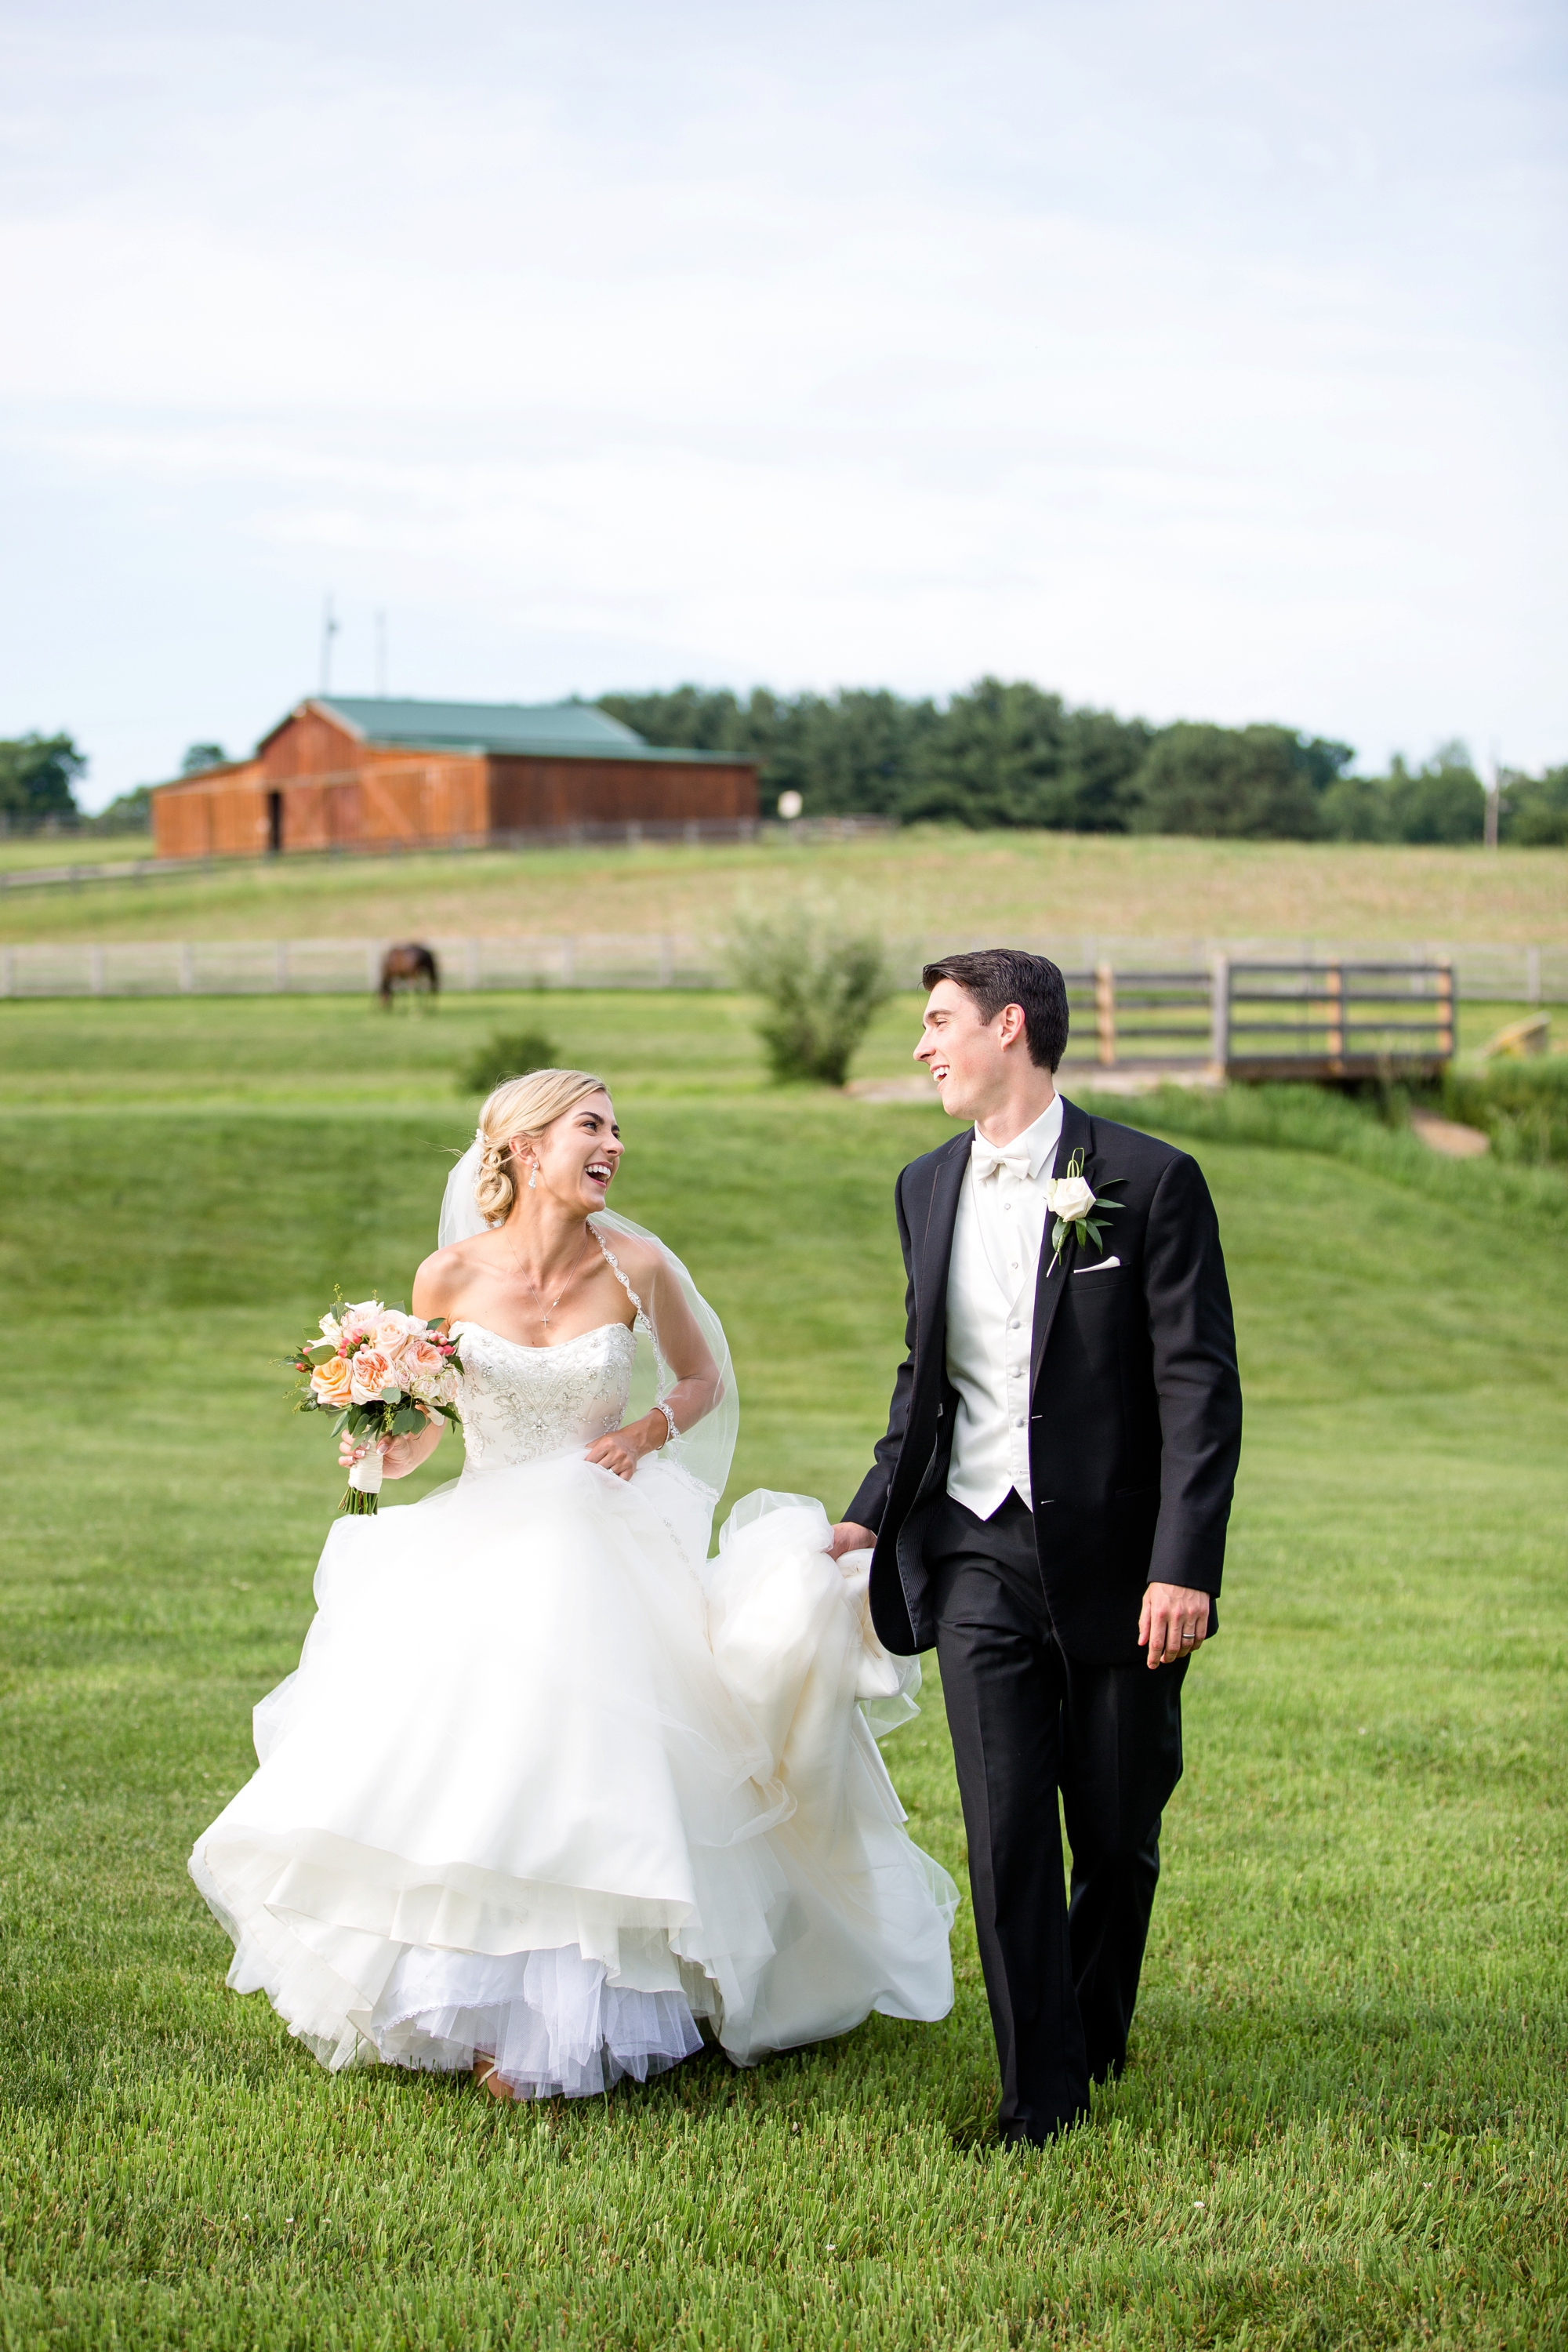 pittsburgh wedding venues, lingrow farm wedding pictures, lingrow farm wedding photos, barn wedding venues pittsburgh